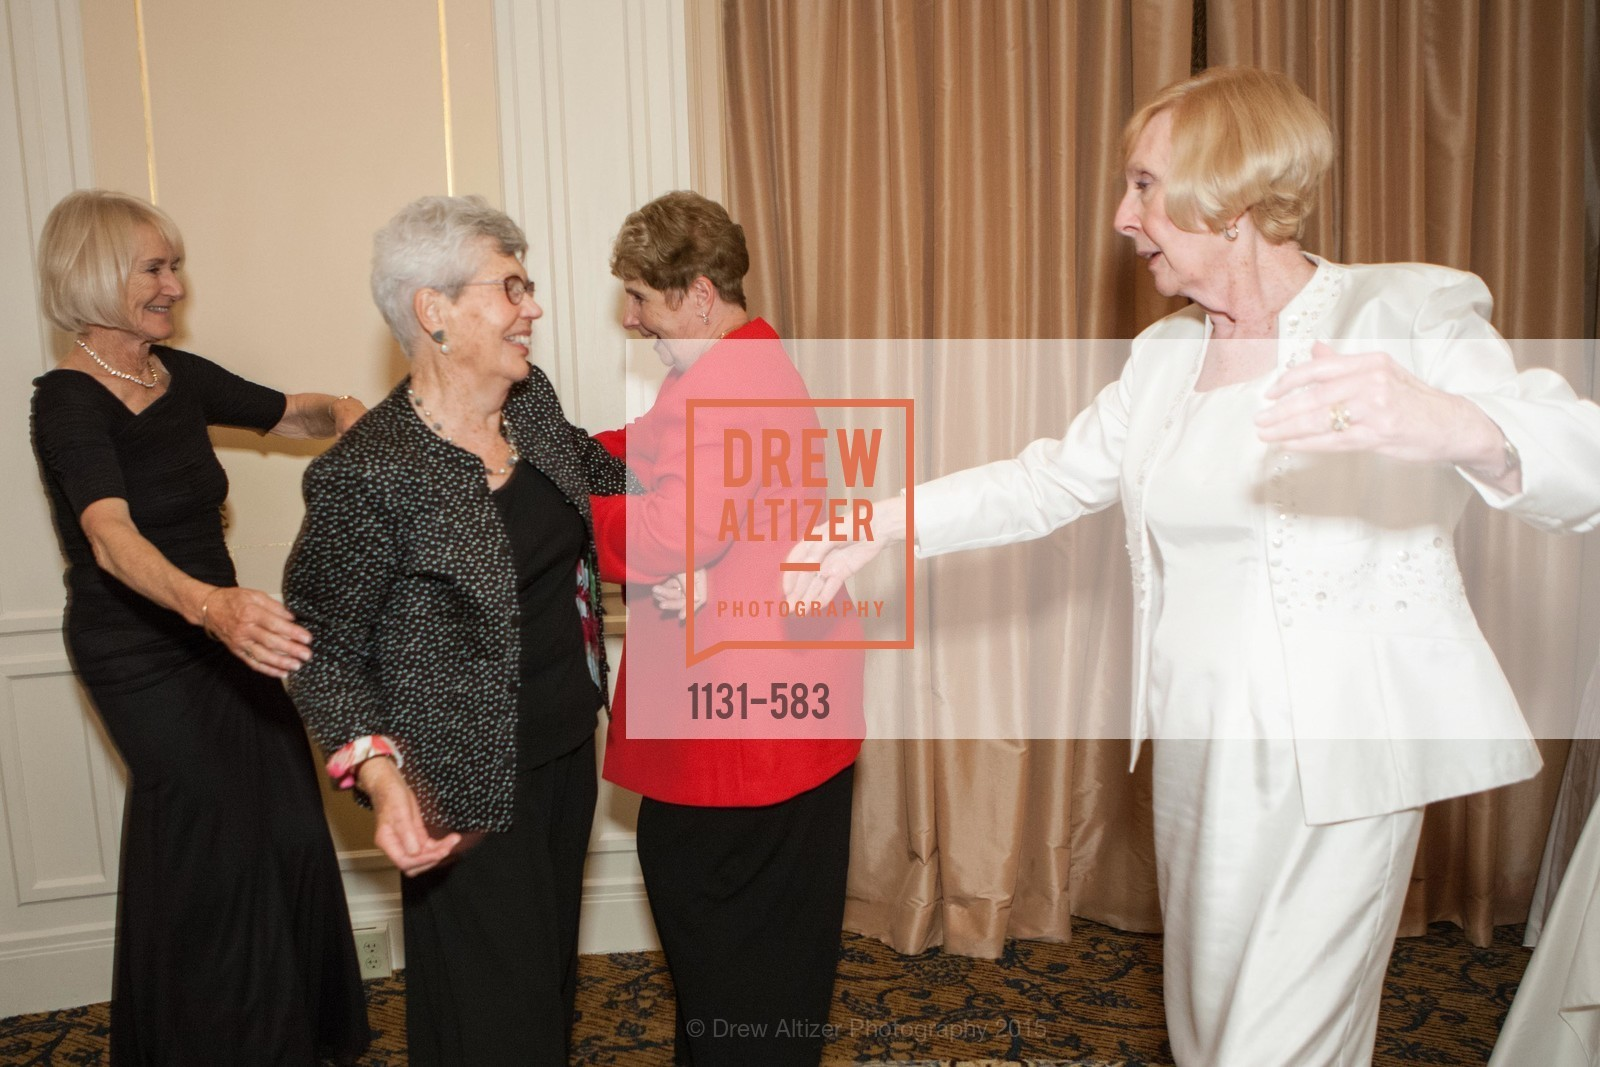 Diana Sworakowski, Jane Standing, Pamela Sweetman, Betty Legan, St. Andrew's Society of San Francisco Annual Banquet and Ball 2015, Marines' Memorial Club & Hotel. 609 Sutter St, November 28th, 2015,Drew Altizer, Drew Altizer Photography, full-service agency, private events, San Francisco photographer, photographer california